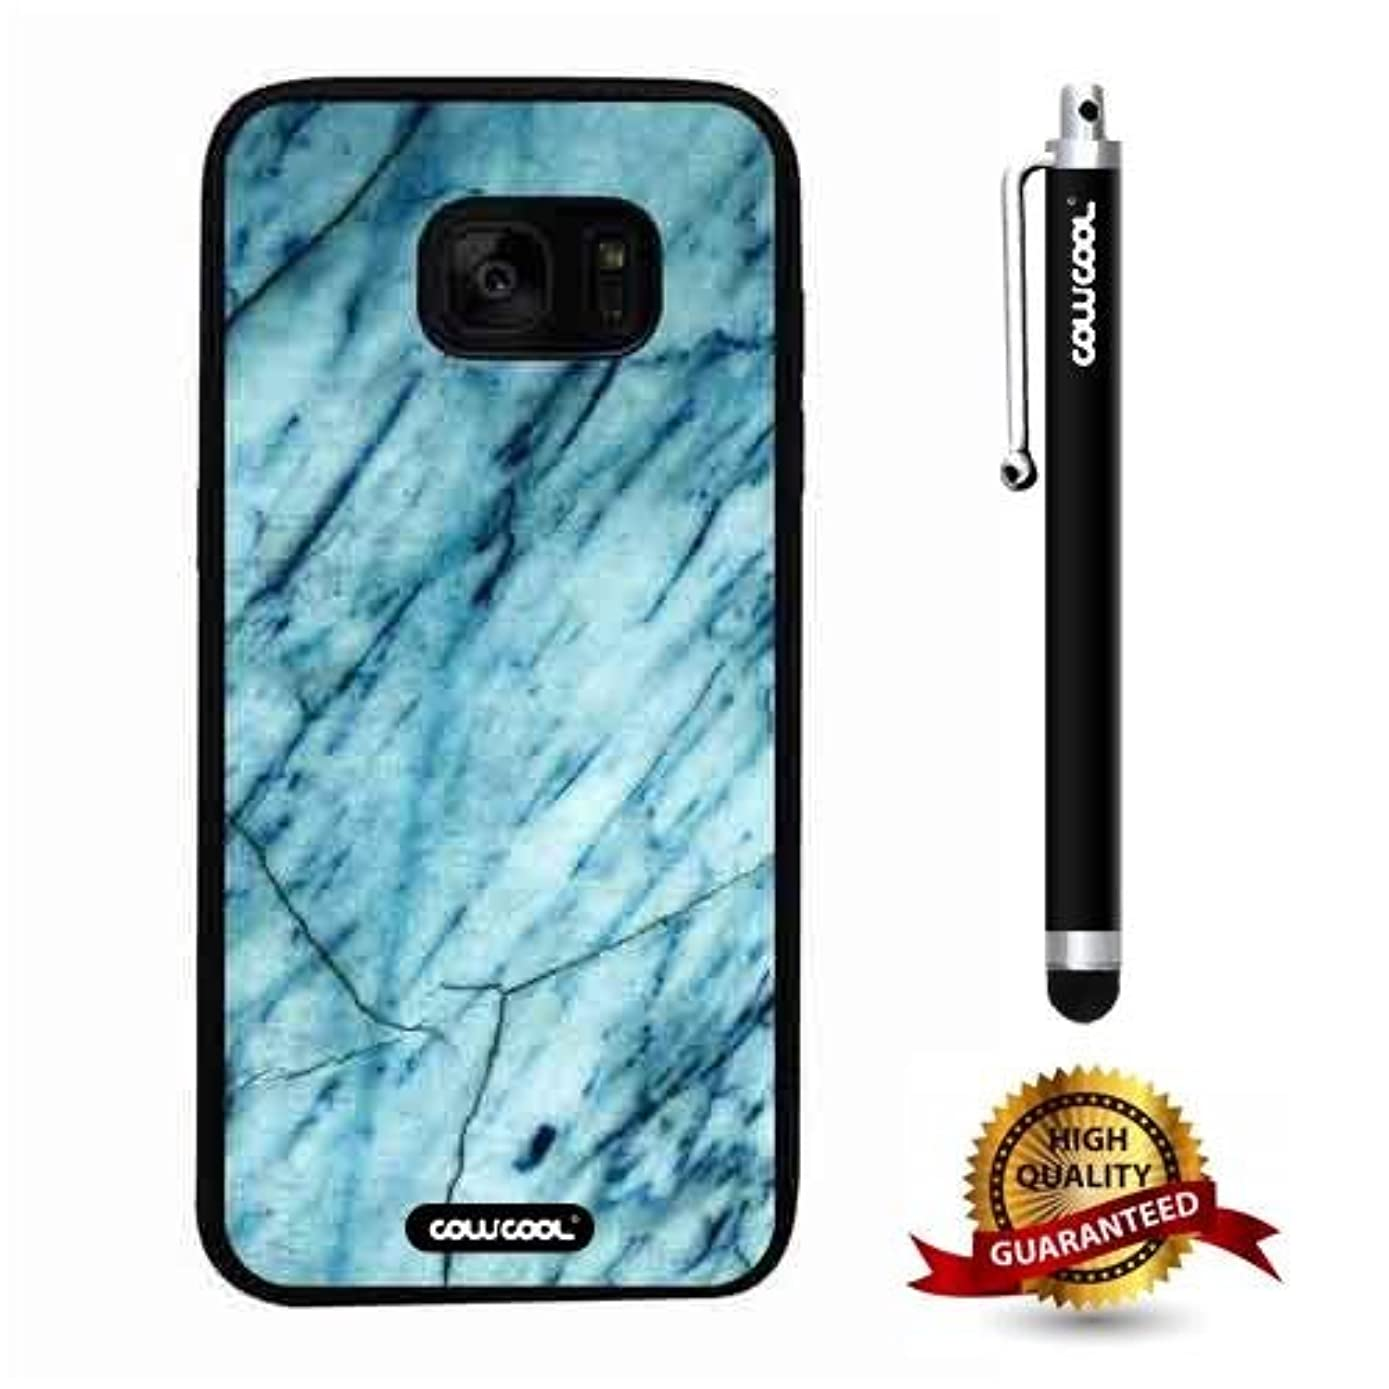 Galaxy S7 edge Case, Marble Pattern Case, Cowcool Ultra Thin Soft Silicone Case for Samsung Galaxy S7 edge - Slash Grid Marble Texture